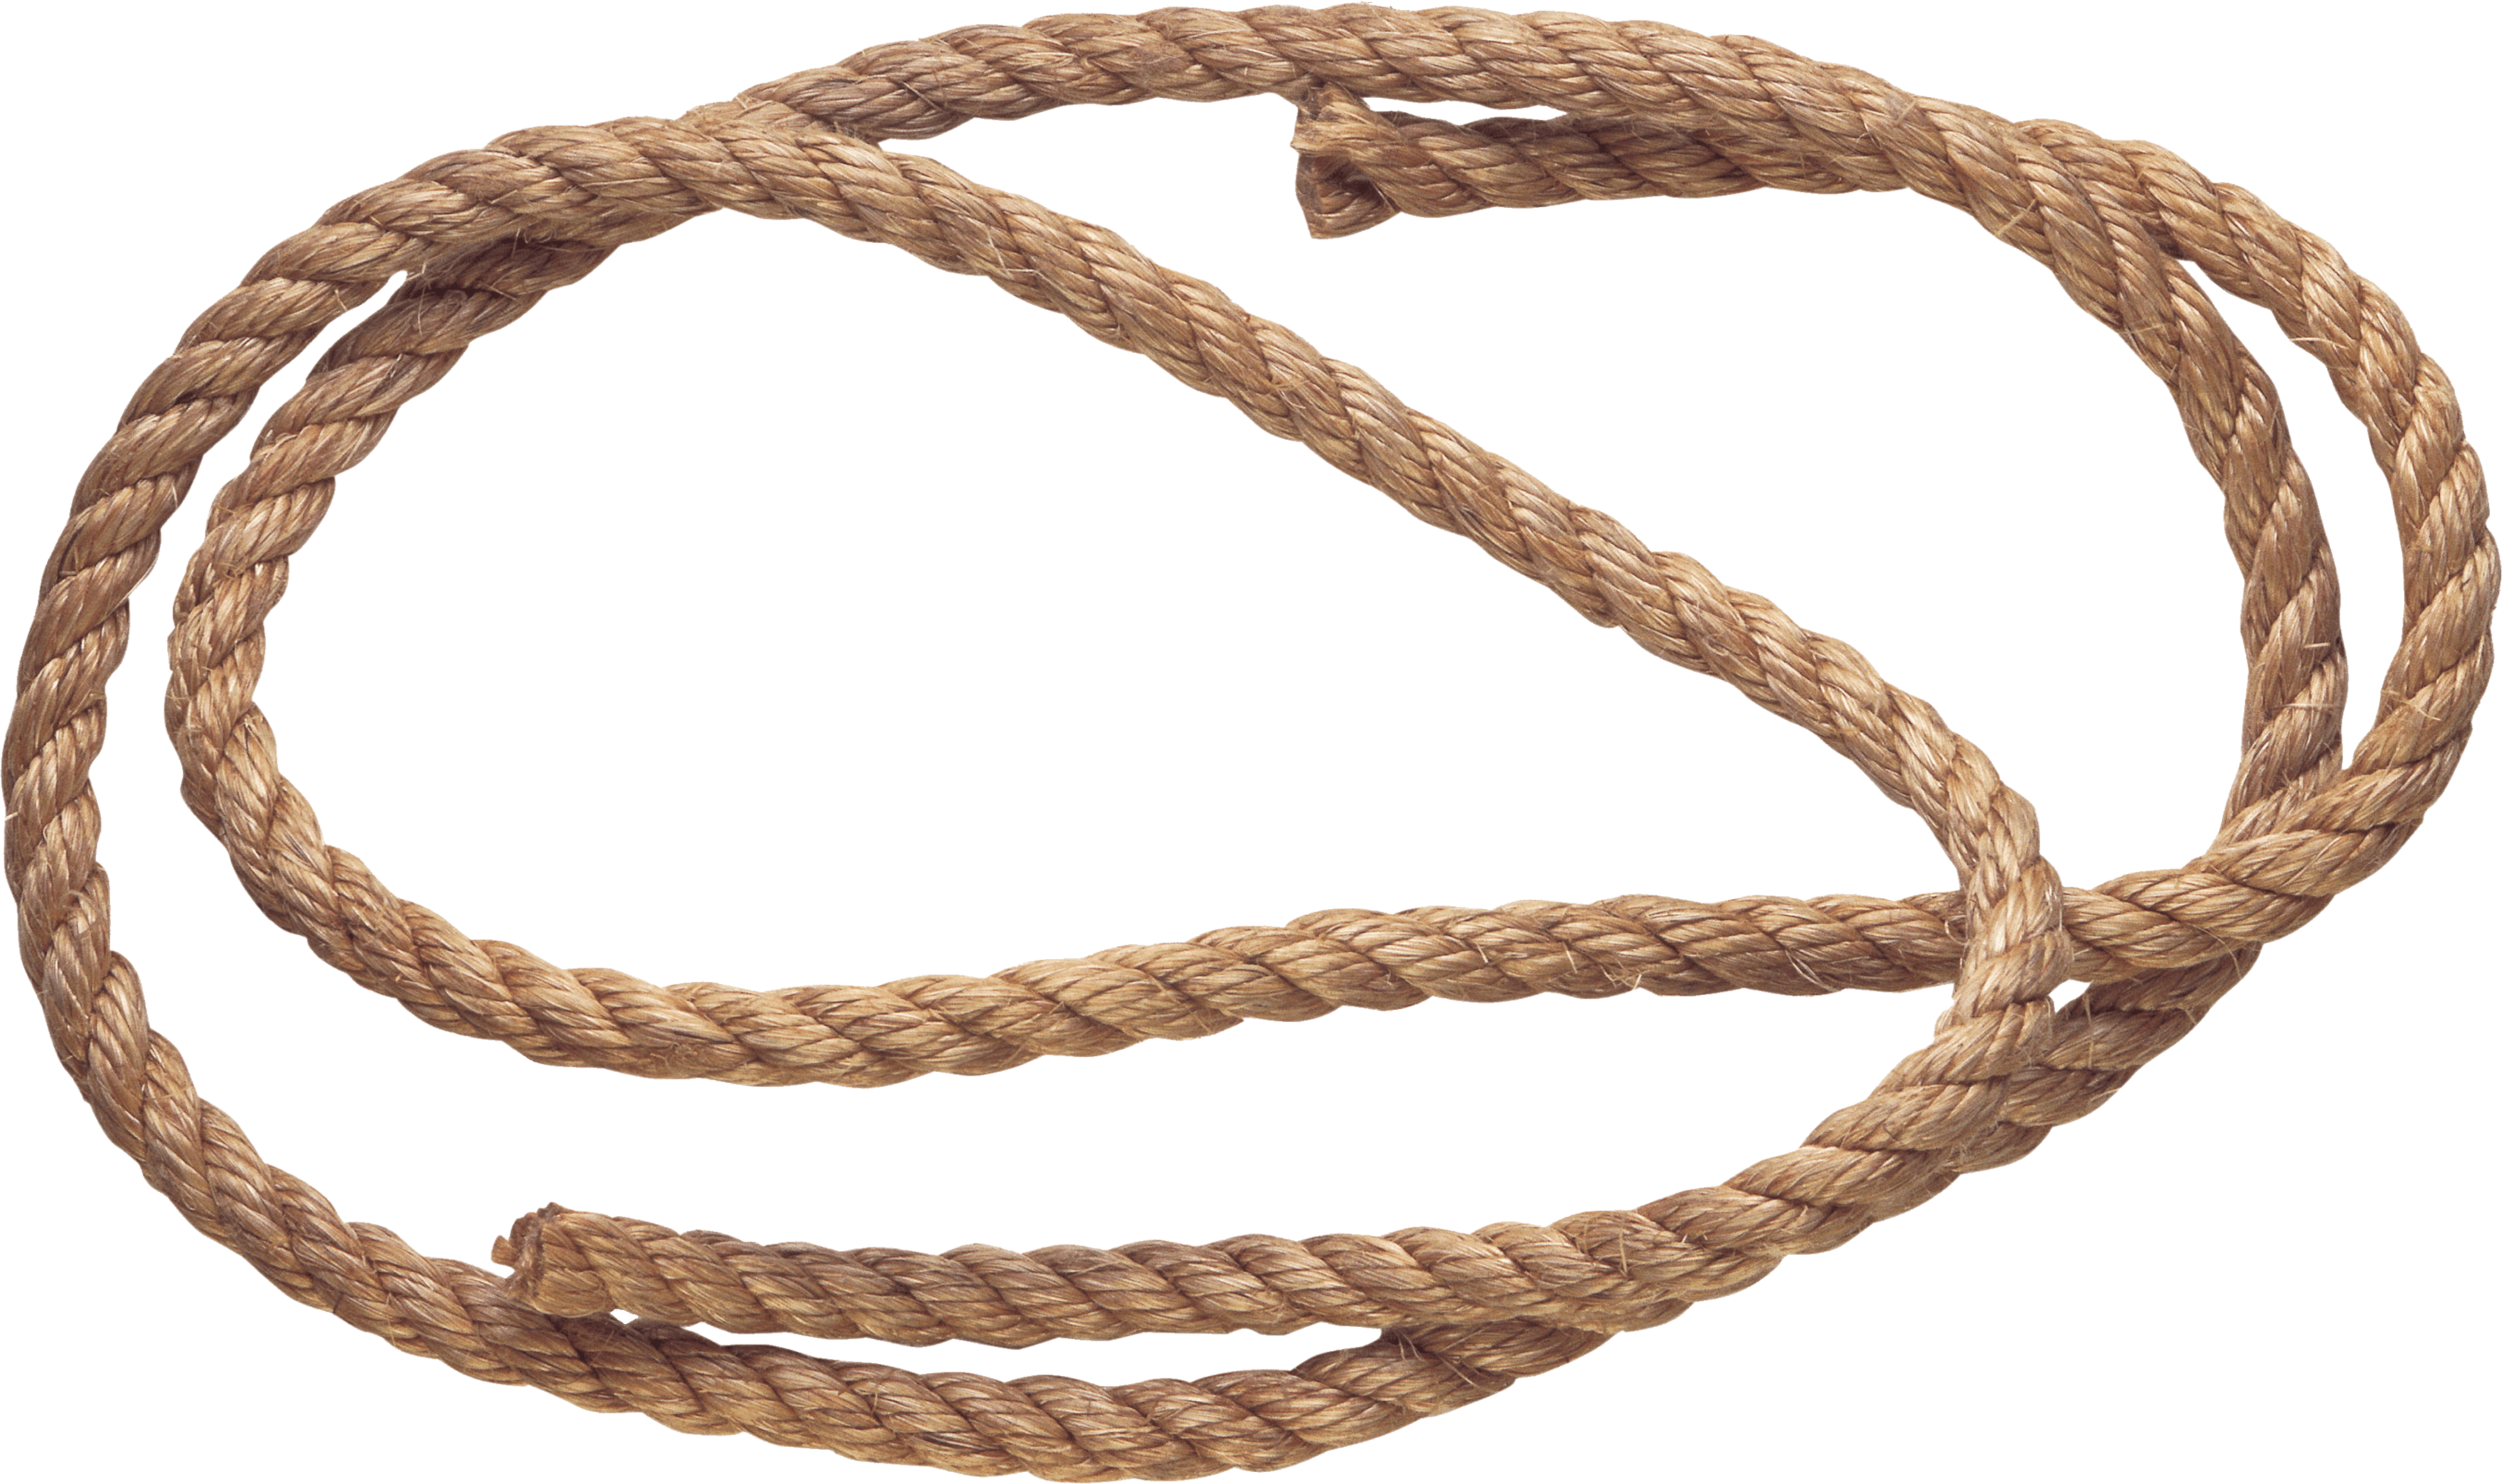 Rope HD PNG - 119038